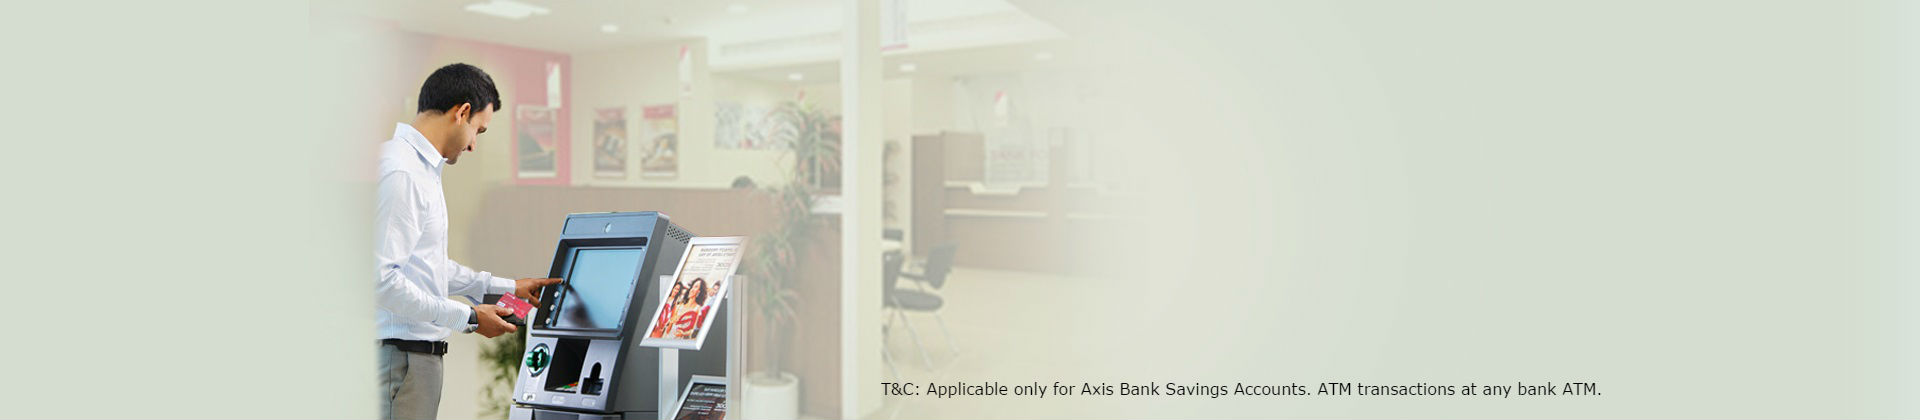 axis-bank-atm-charges-waiver